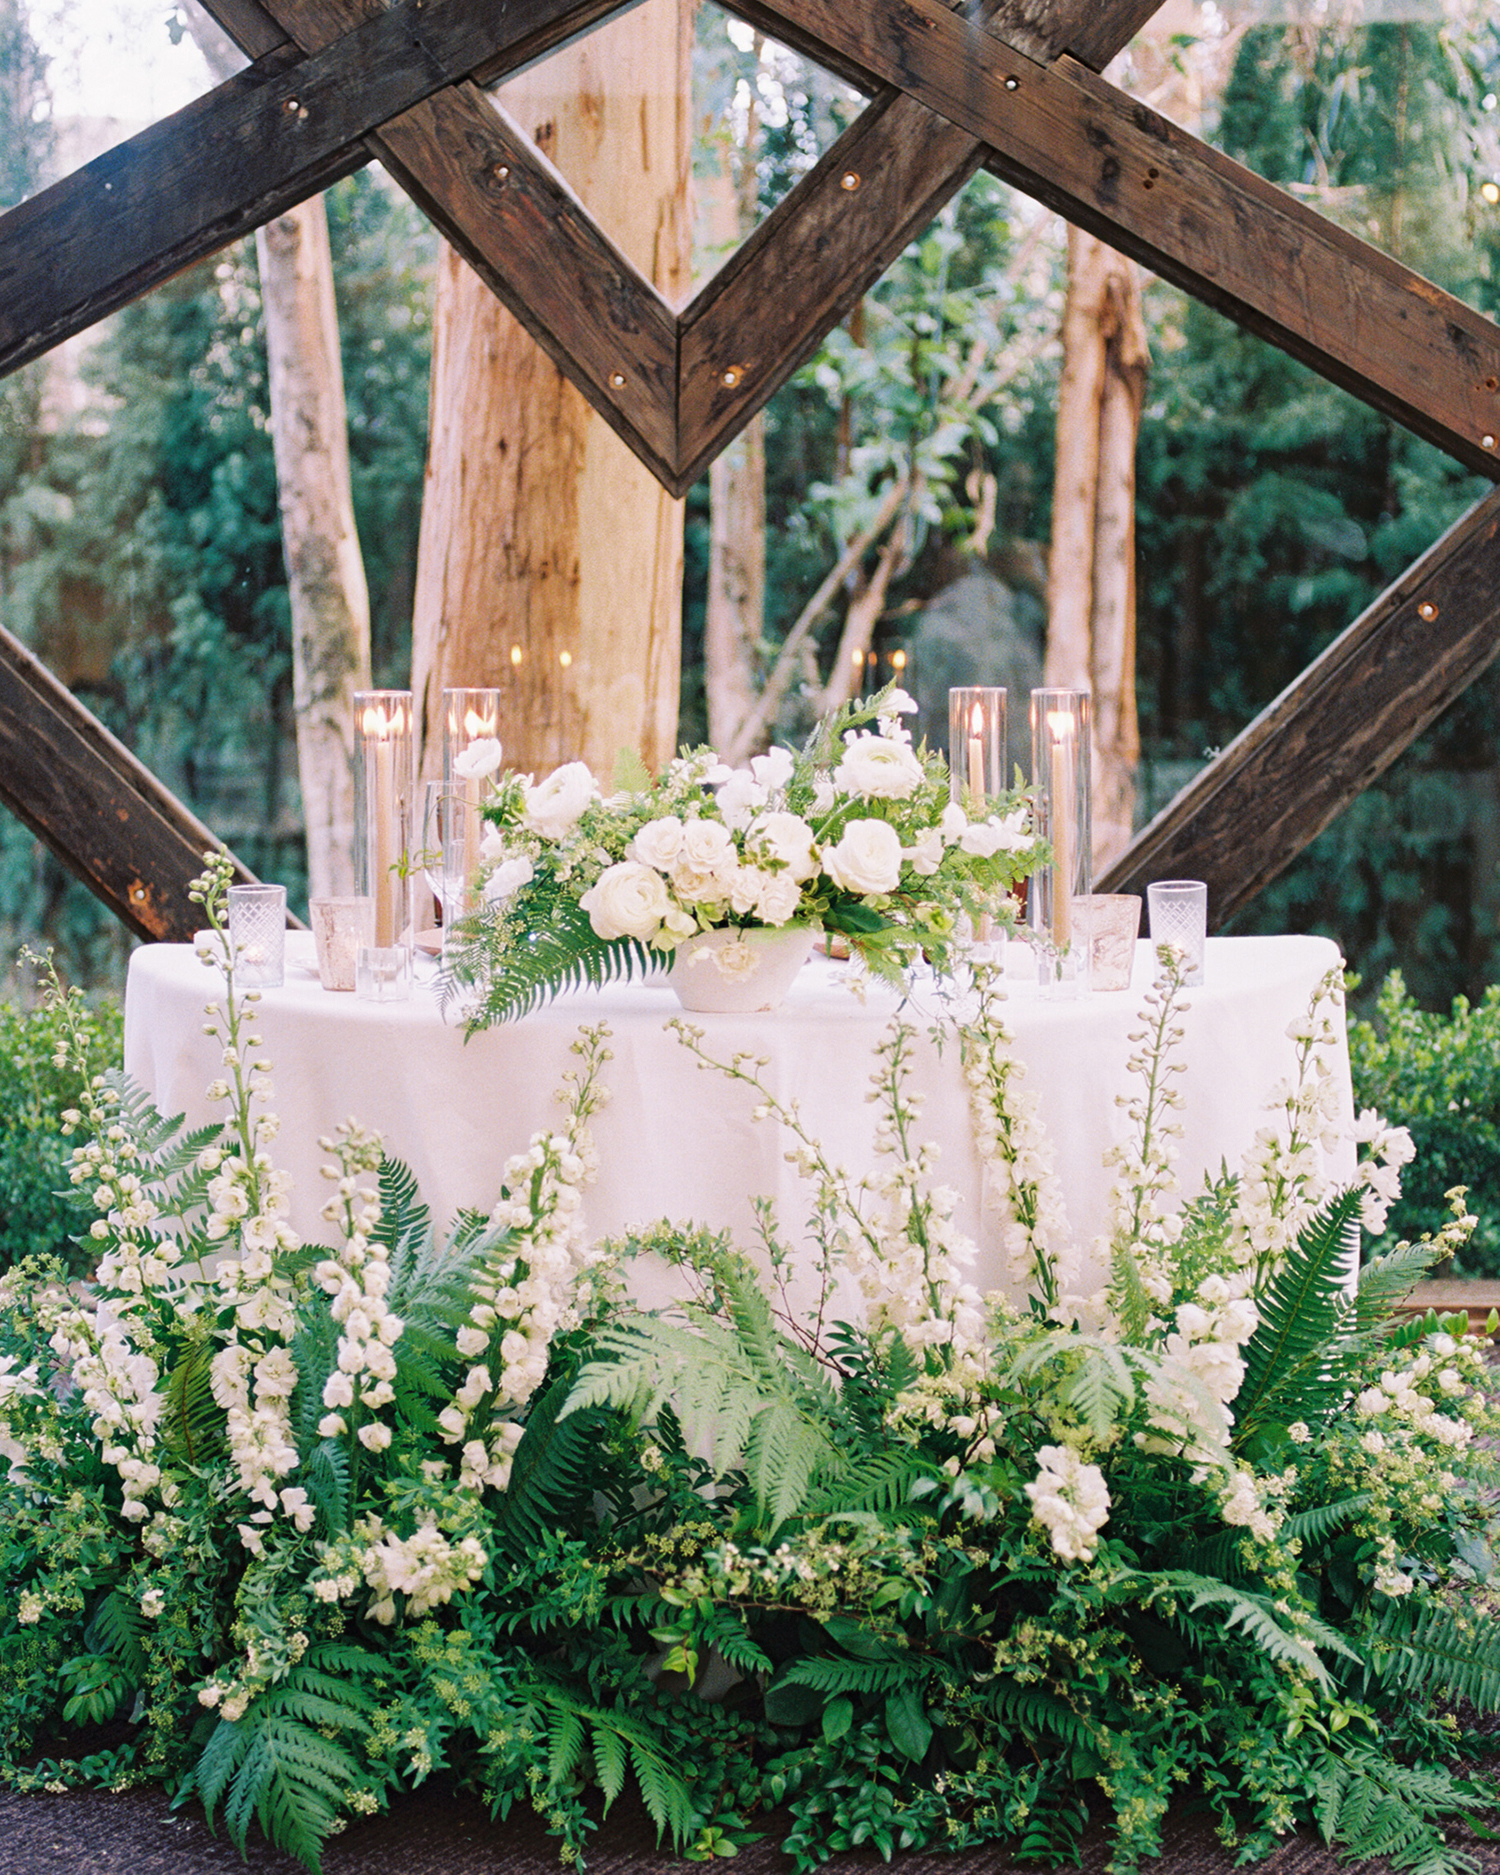 lauren aaron wedding head table surrounded by plants